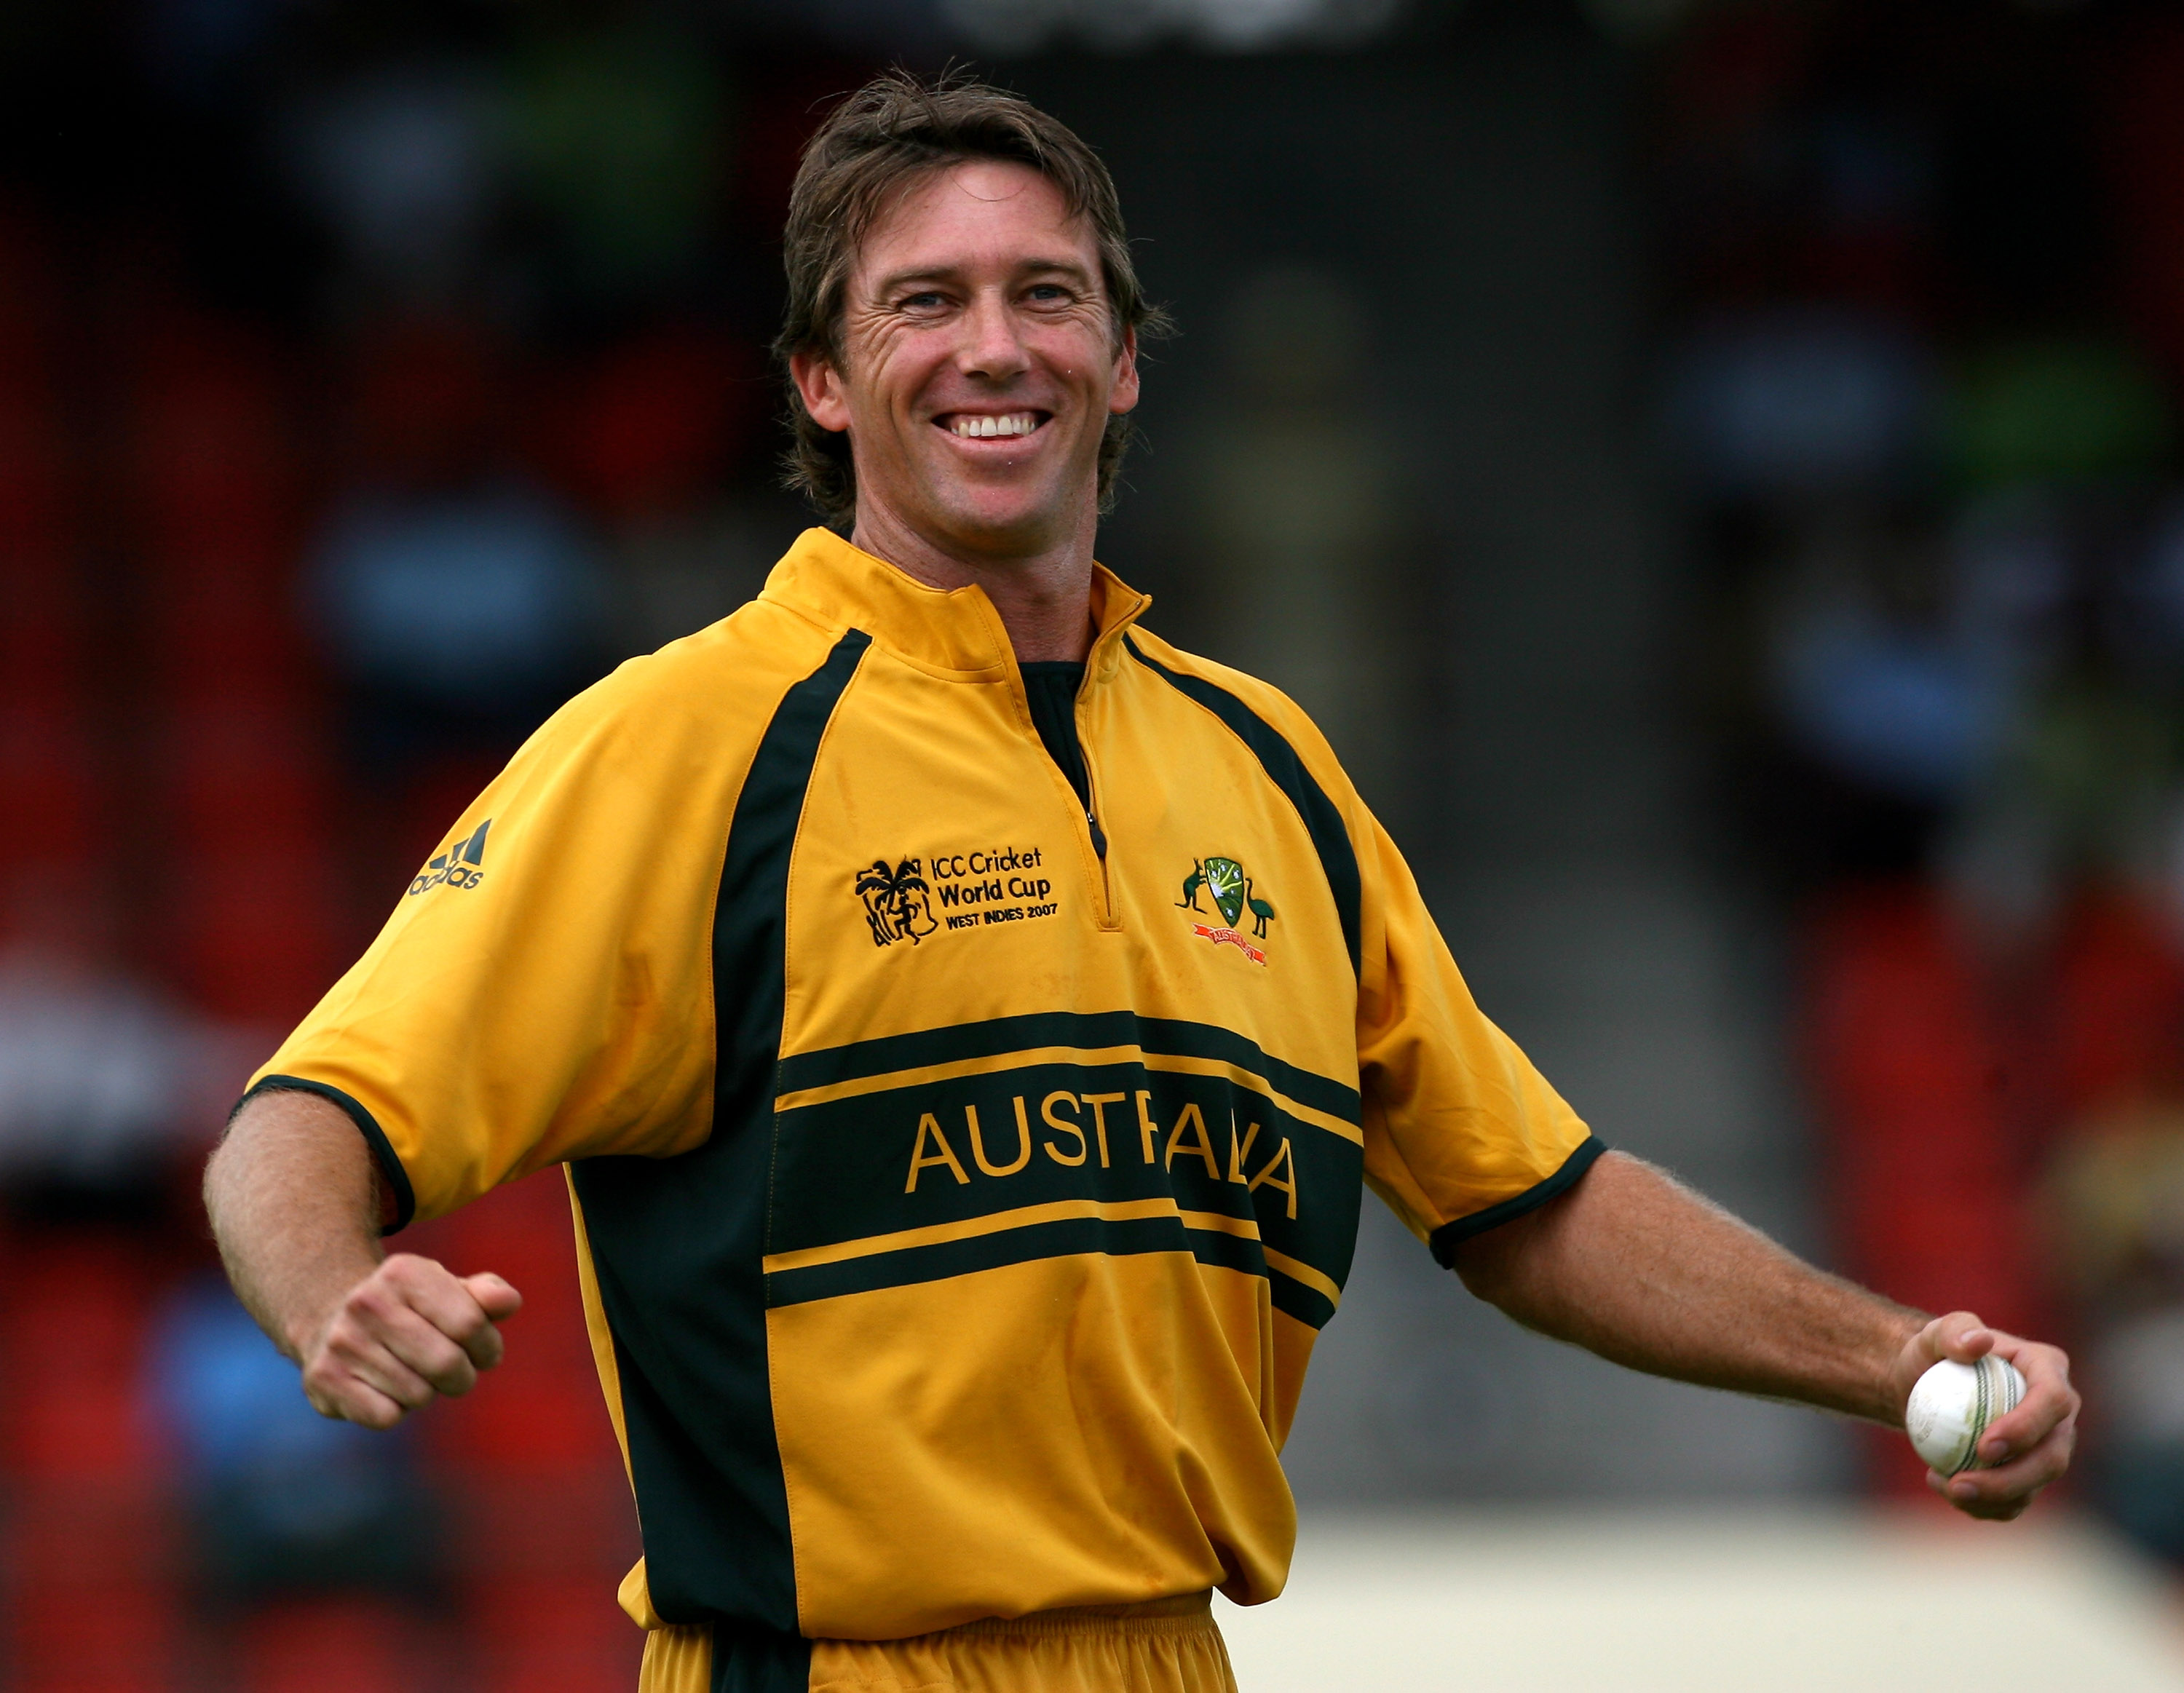 Glenn McGrath for Australia Cricket Team